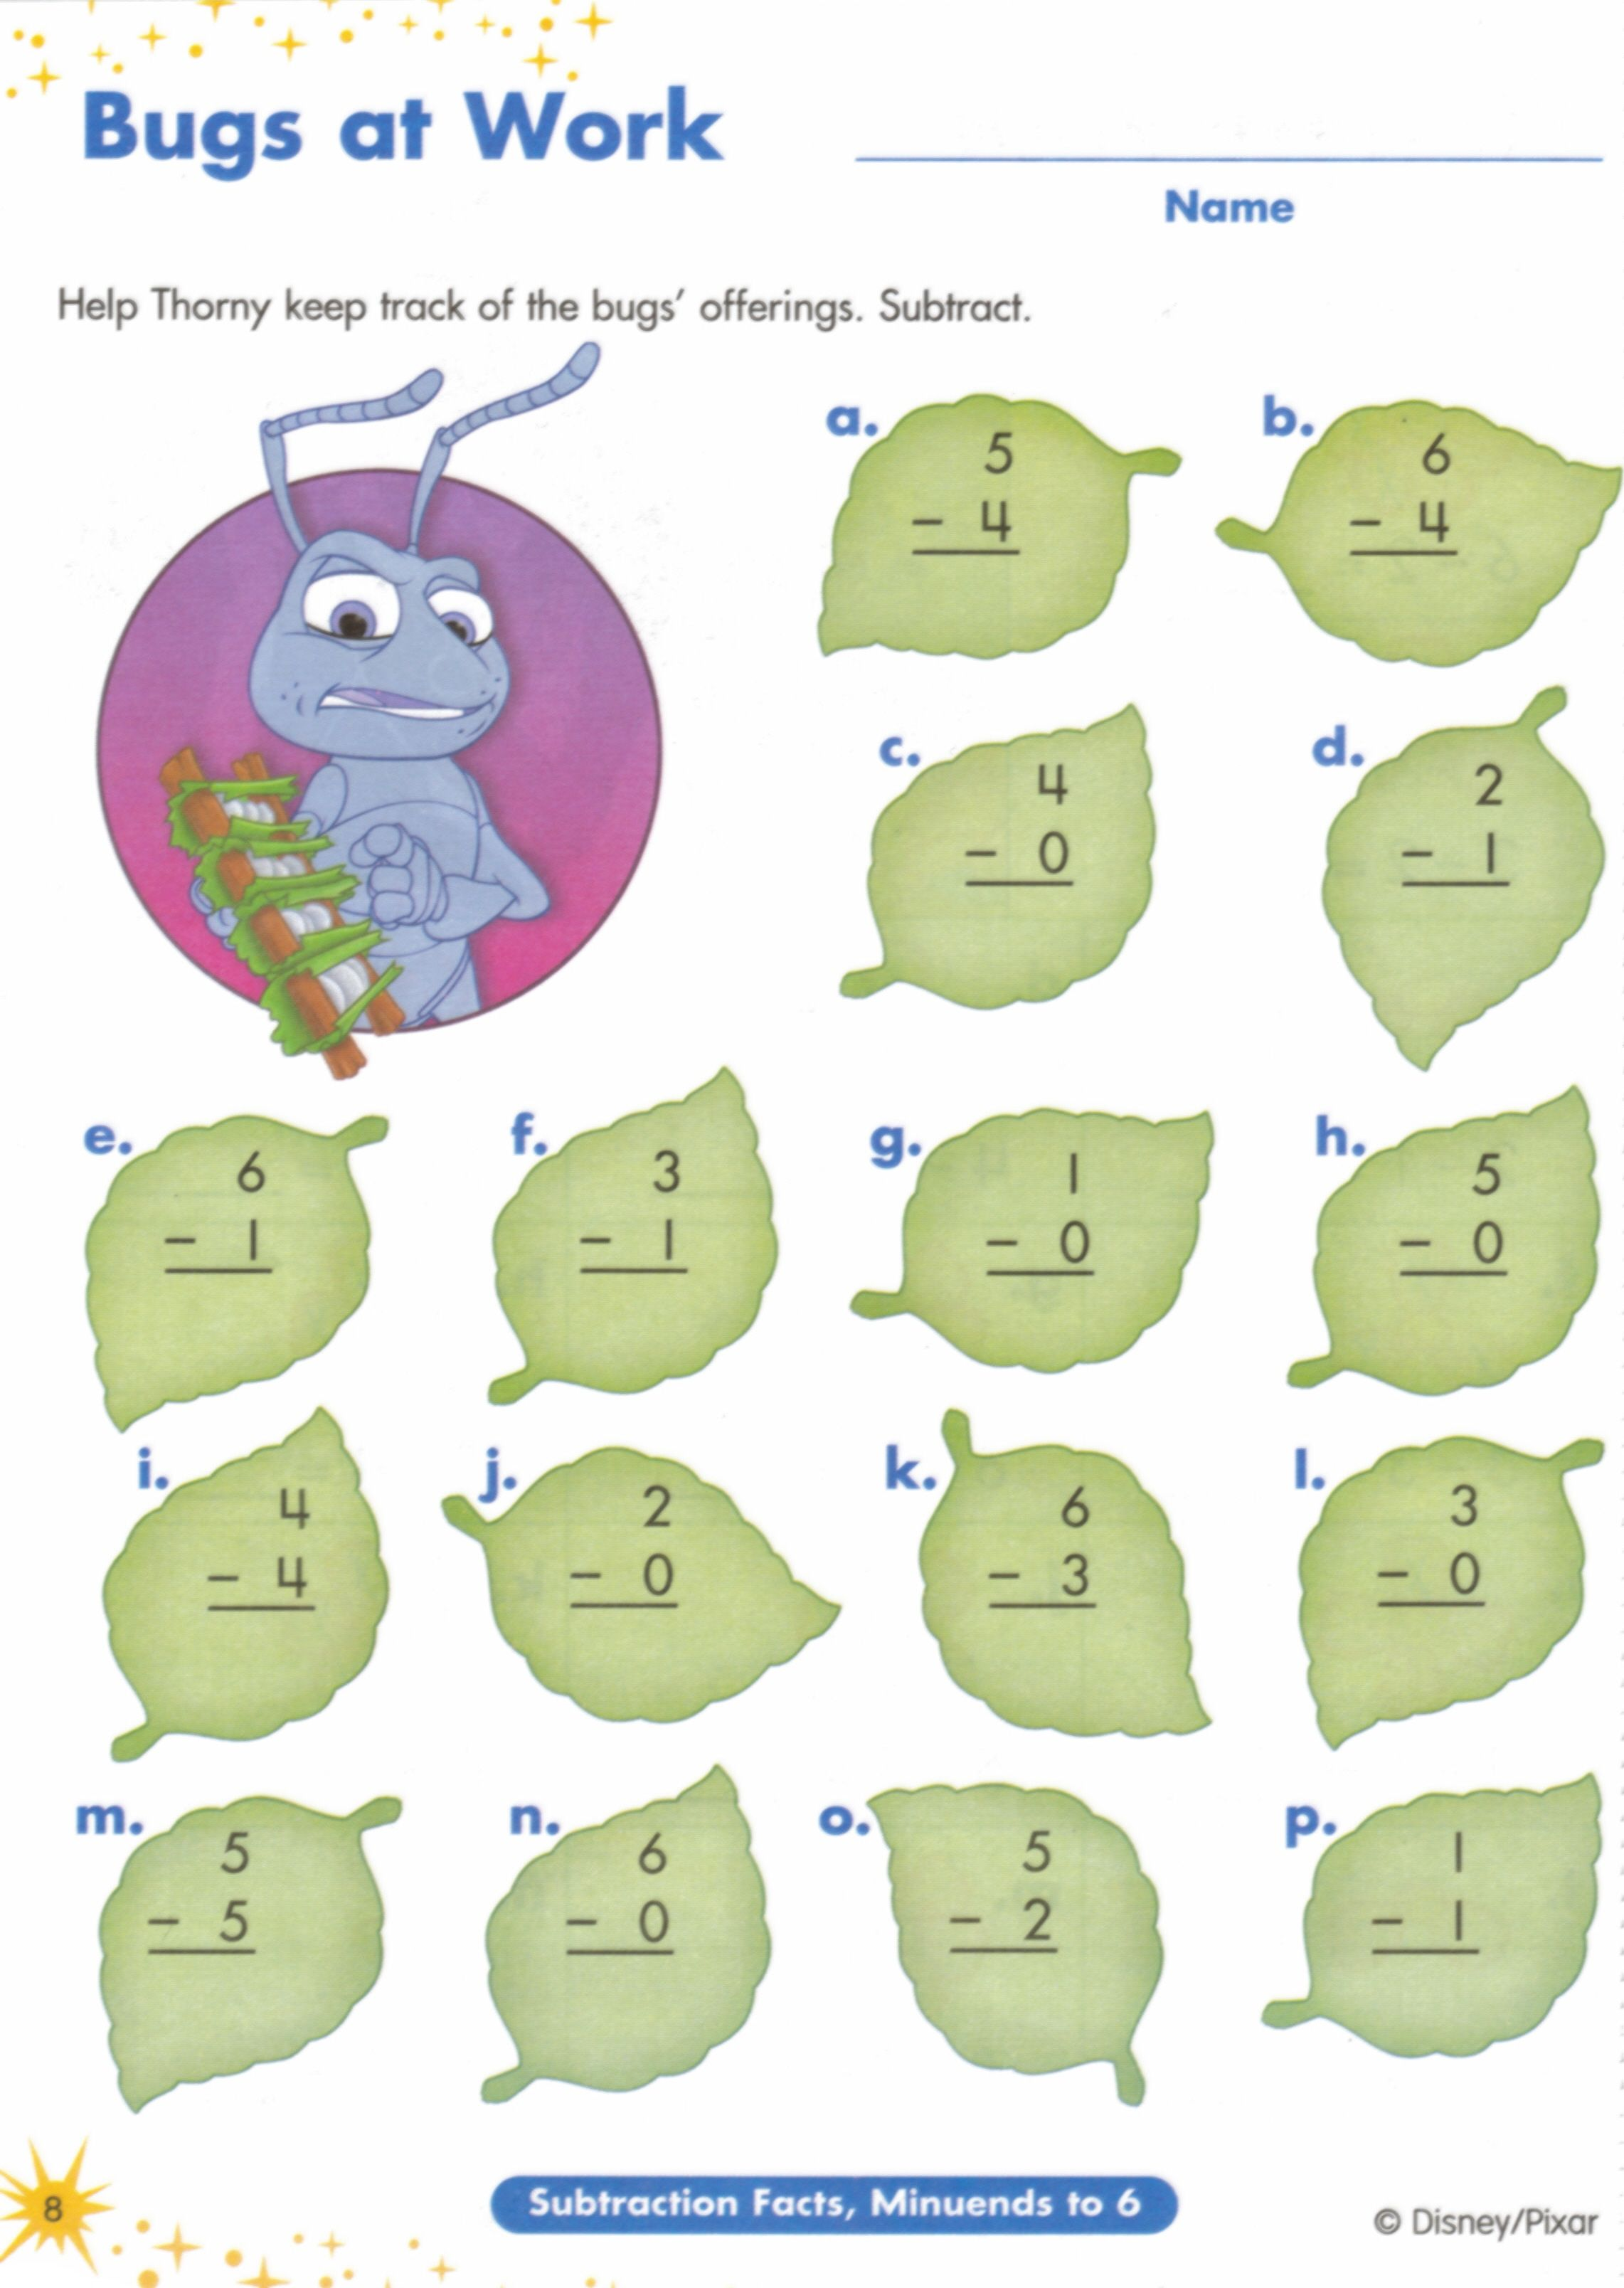 Proatmealus  Outstanding  Images About Worksheets On Pinterest  Fun Facts For Kids  With Exciting  Images About Worksheets On Pinterest  Fun Facts For Kids Earth Day Worksheets And Jungles With Comely Math Problem Worksheets For Th Graders Also Congruent Lines Worksheet In Addition Printable English Worksheets For Kids And Adding   Digit Numbers Worksheet As Well As Free Printable Grammar Worksheets For Rd Grade Additionally Estimation Addition Worksheets From Pinterestcom With Proatmealus  Exciting  Images About Worksheets On Pinterest  Fun Facts For Kids  With Comely  Images About Worksheets On Pinterest  Fun Facts For Kids Earth Day Worksheets And Jungles And Outstanding Math Problem Worksheets For Th Graders Also Congruent Lines Worksheet In Addition Printable English Worksheets For Kids From Pinterestcom